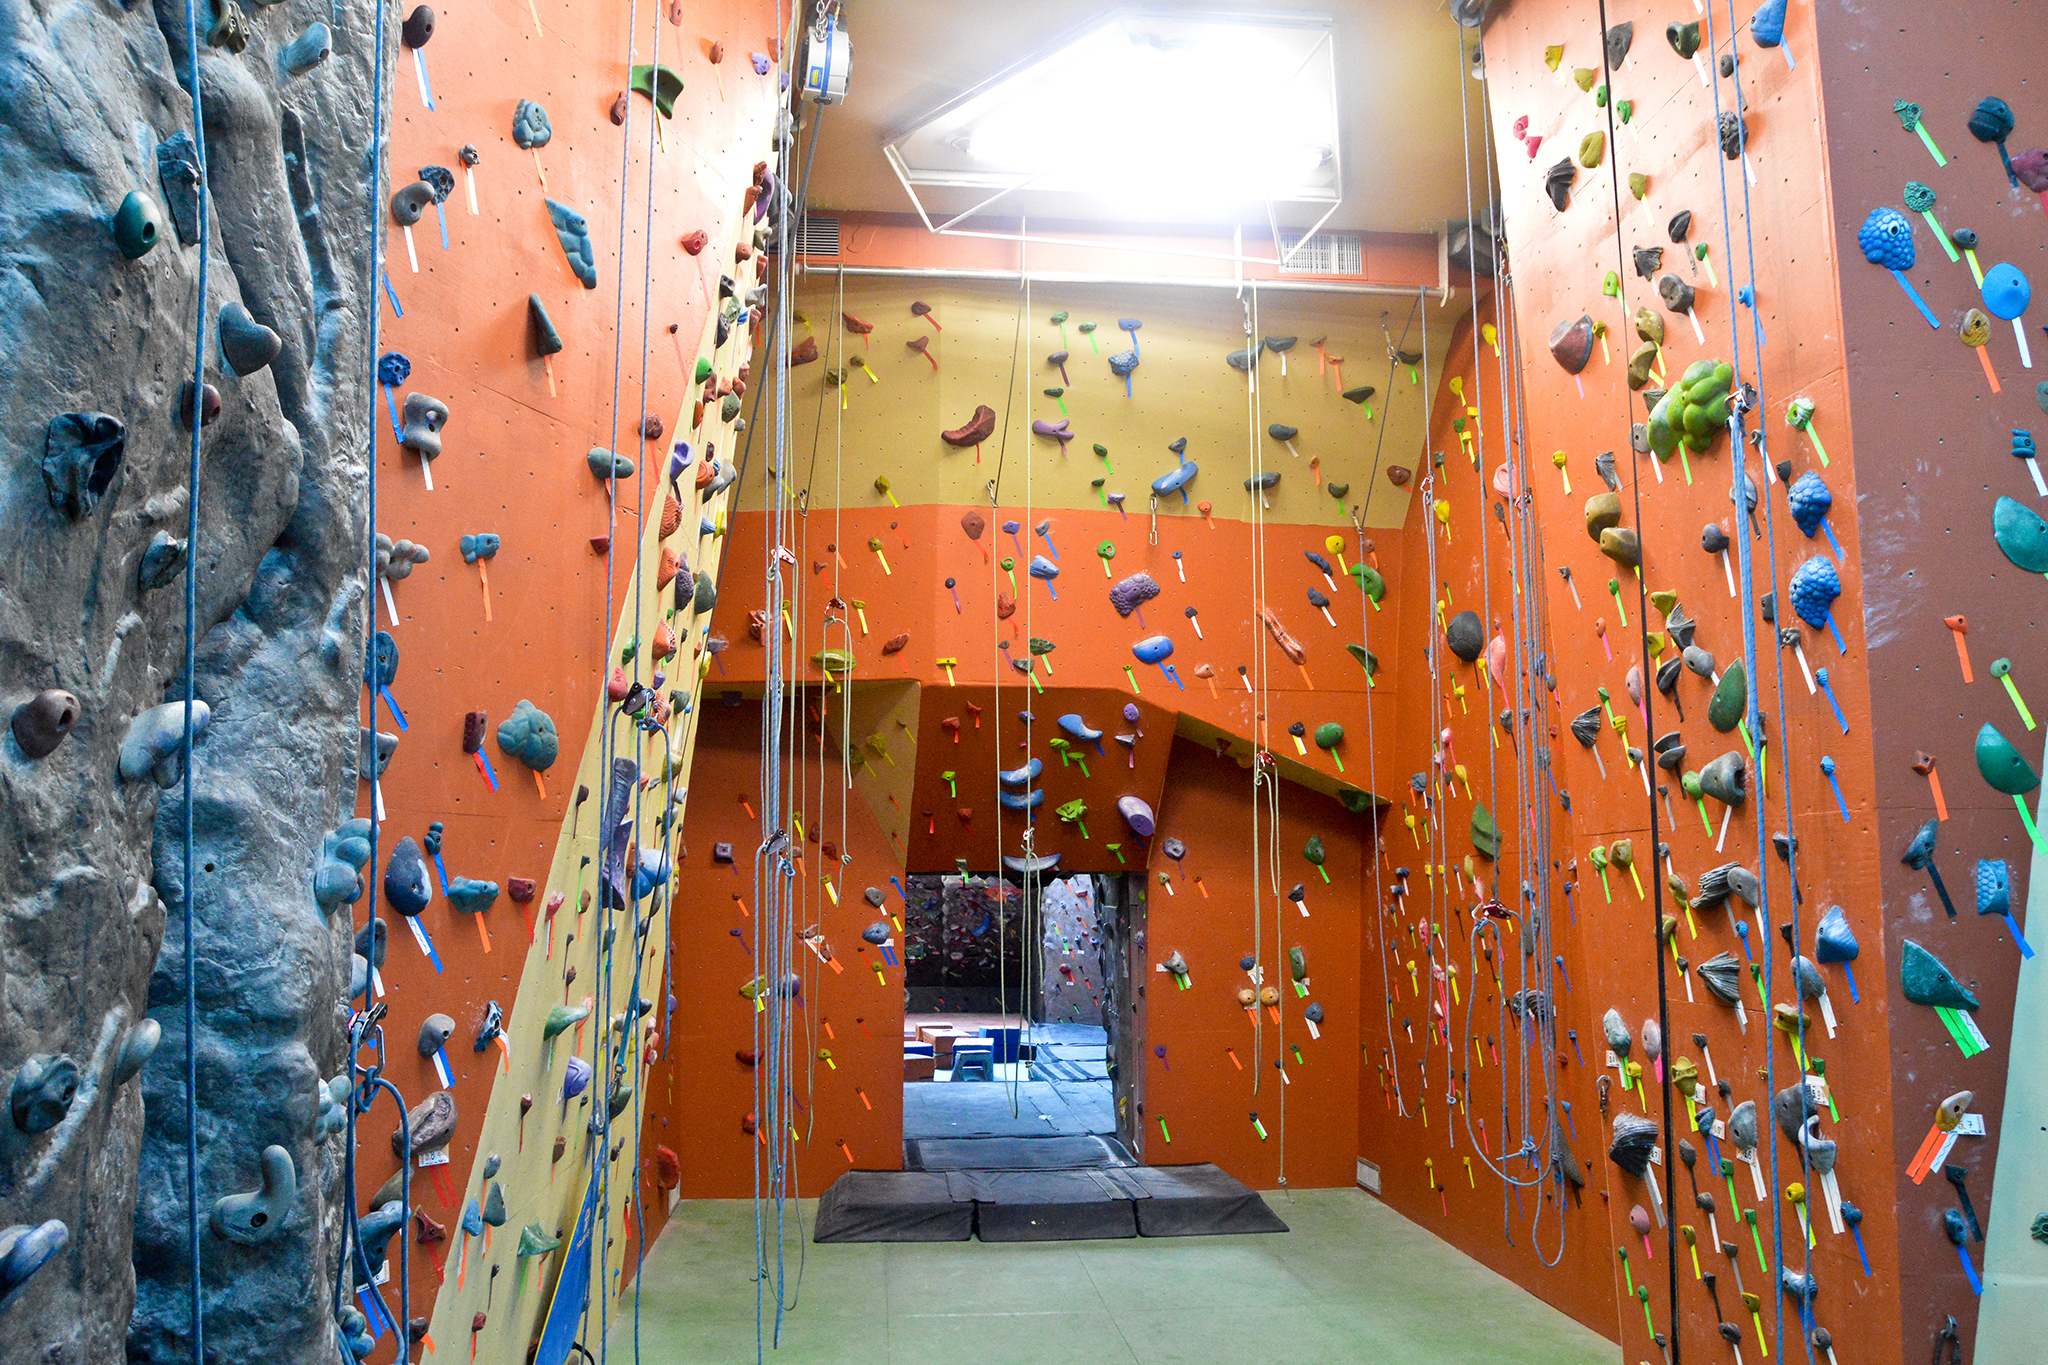 Best places to go outdoor or indoor rock climbing in nyc for Places to visit near nyc